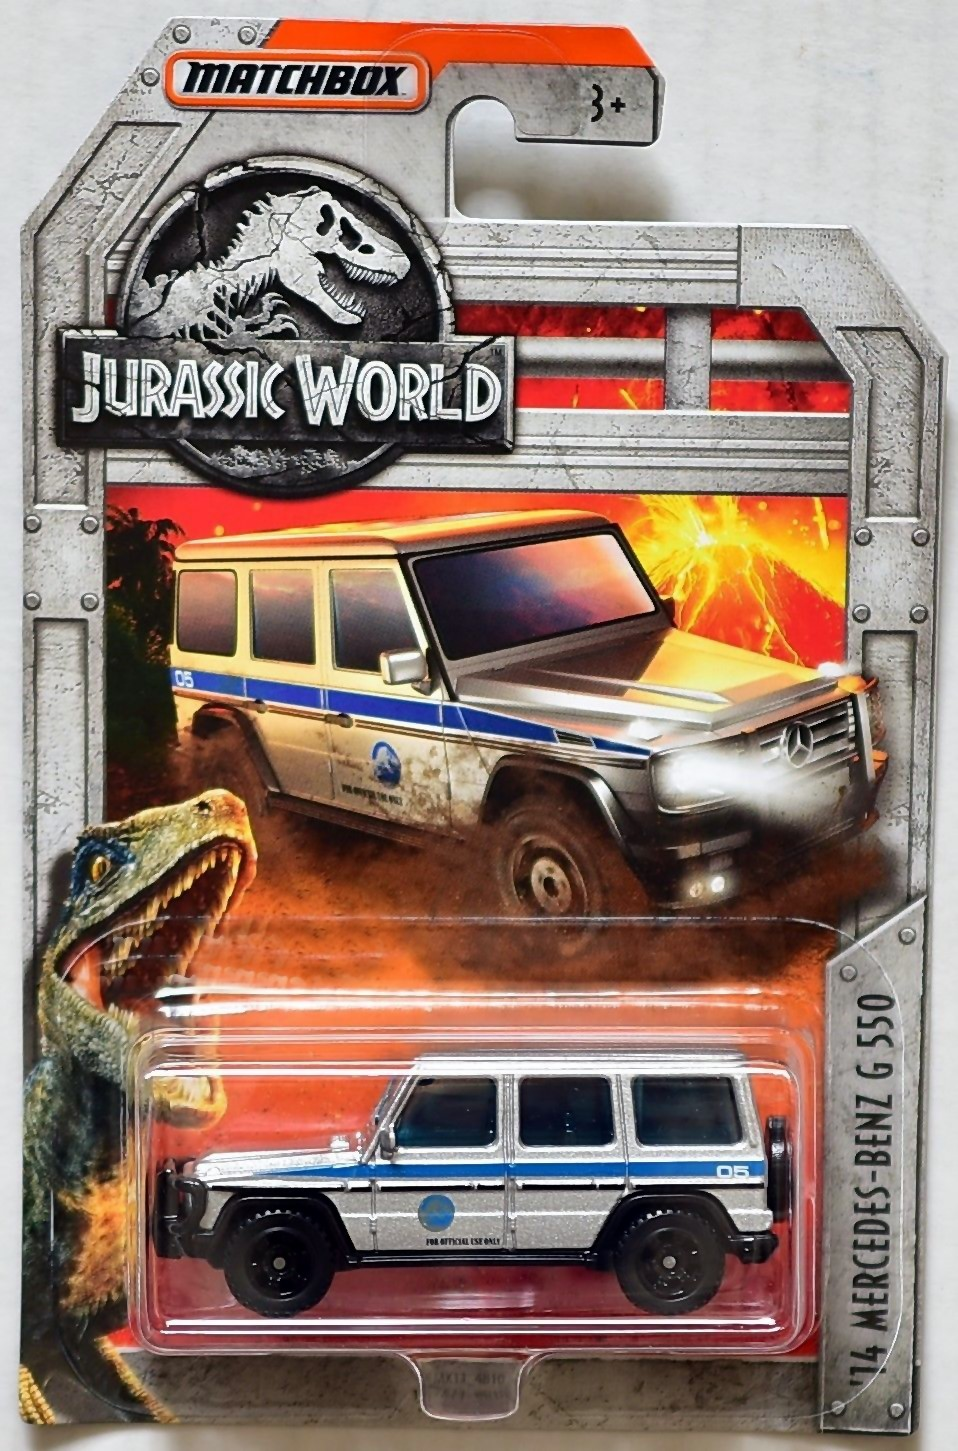 mercedes-benz_g550_jurassic_world_2018.jpg